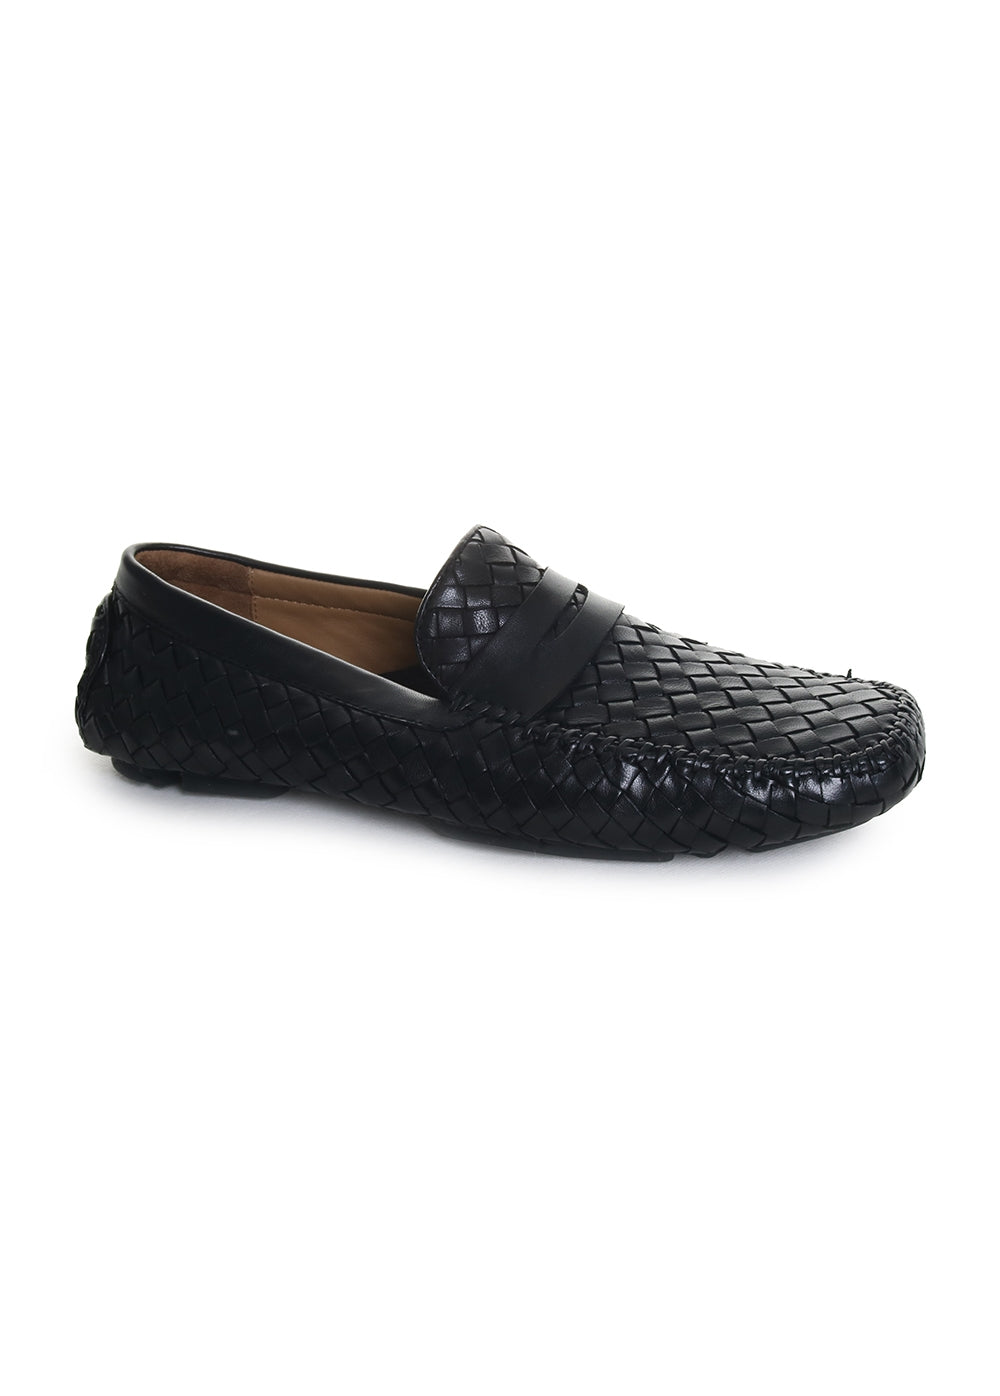 San Tropez Leather Loafers